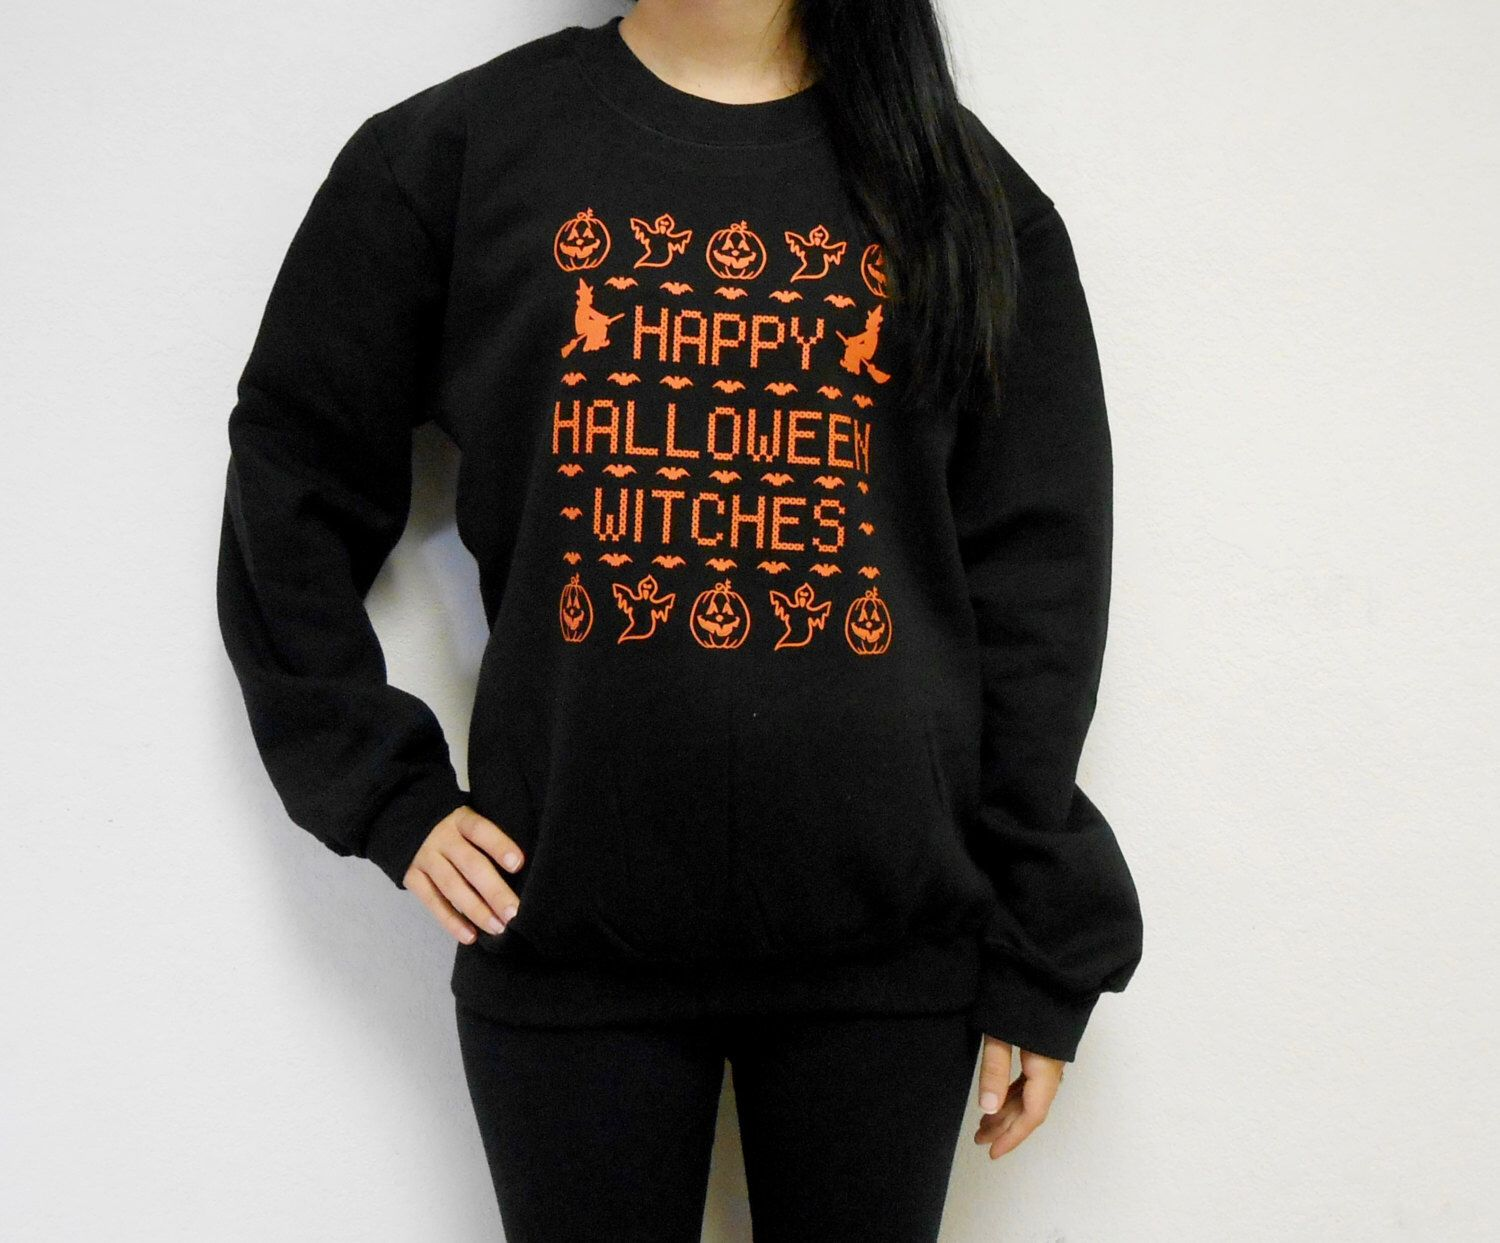 unisex happy halloween witches crew neck fleece sweatshirt ugly halloween sweater happy halloween witches by stronggirlclothing on etsy